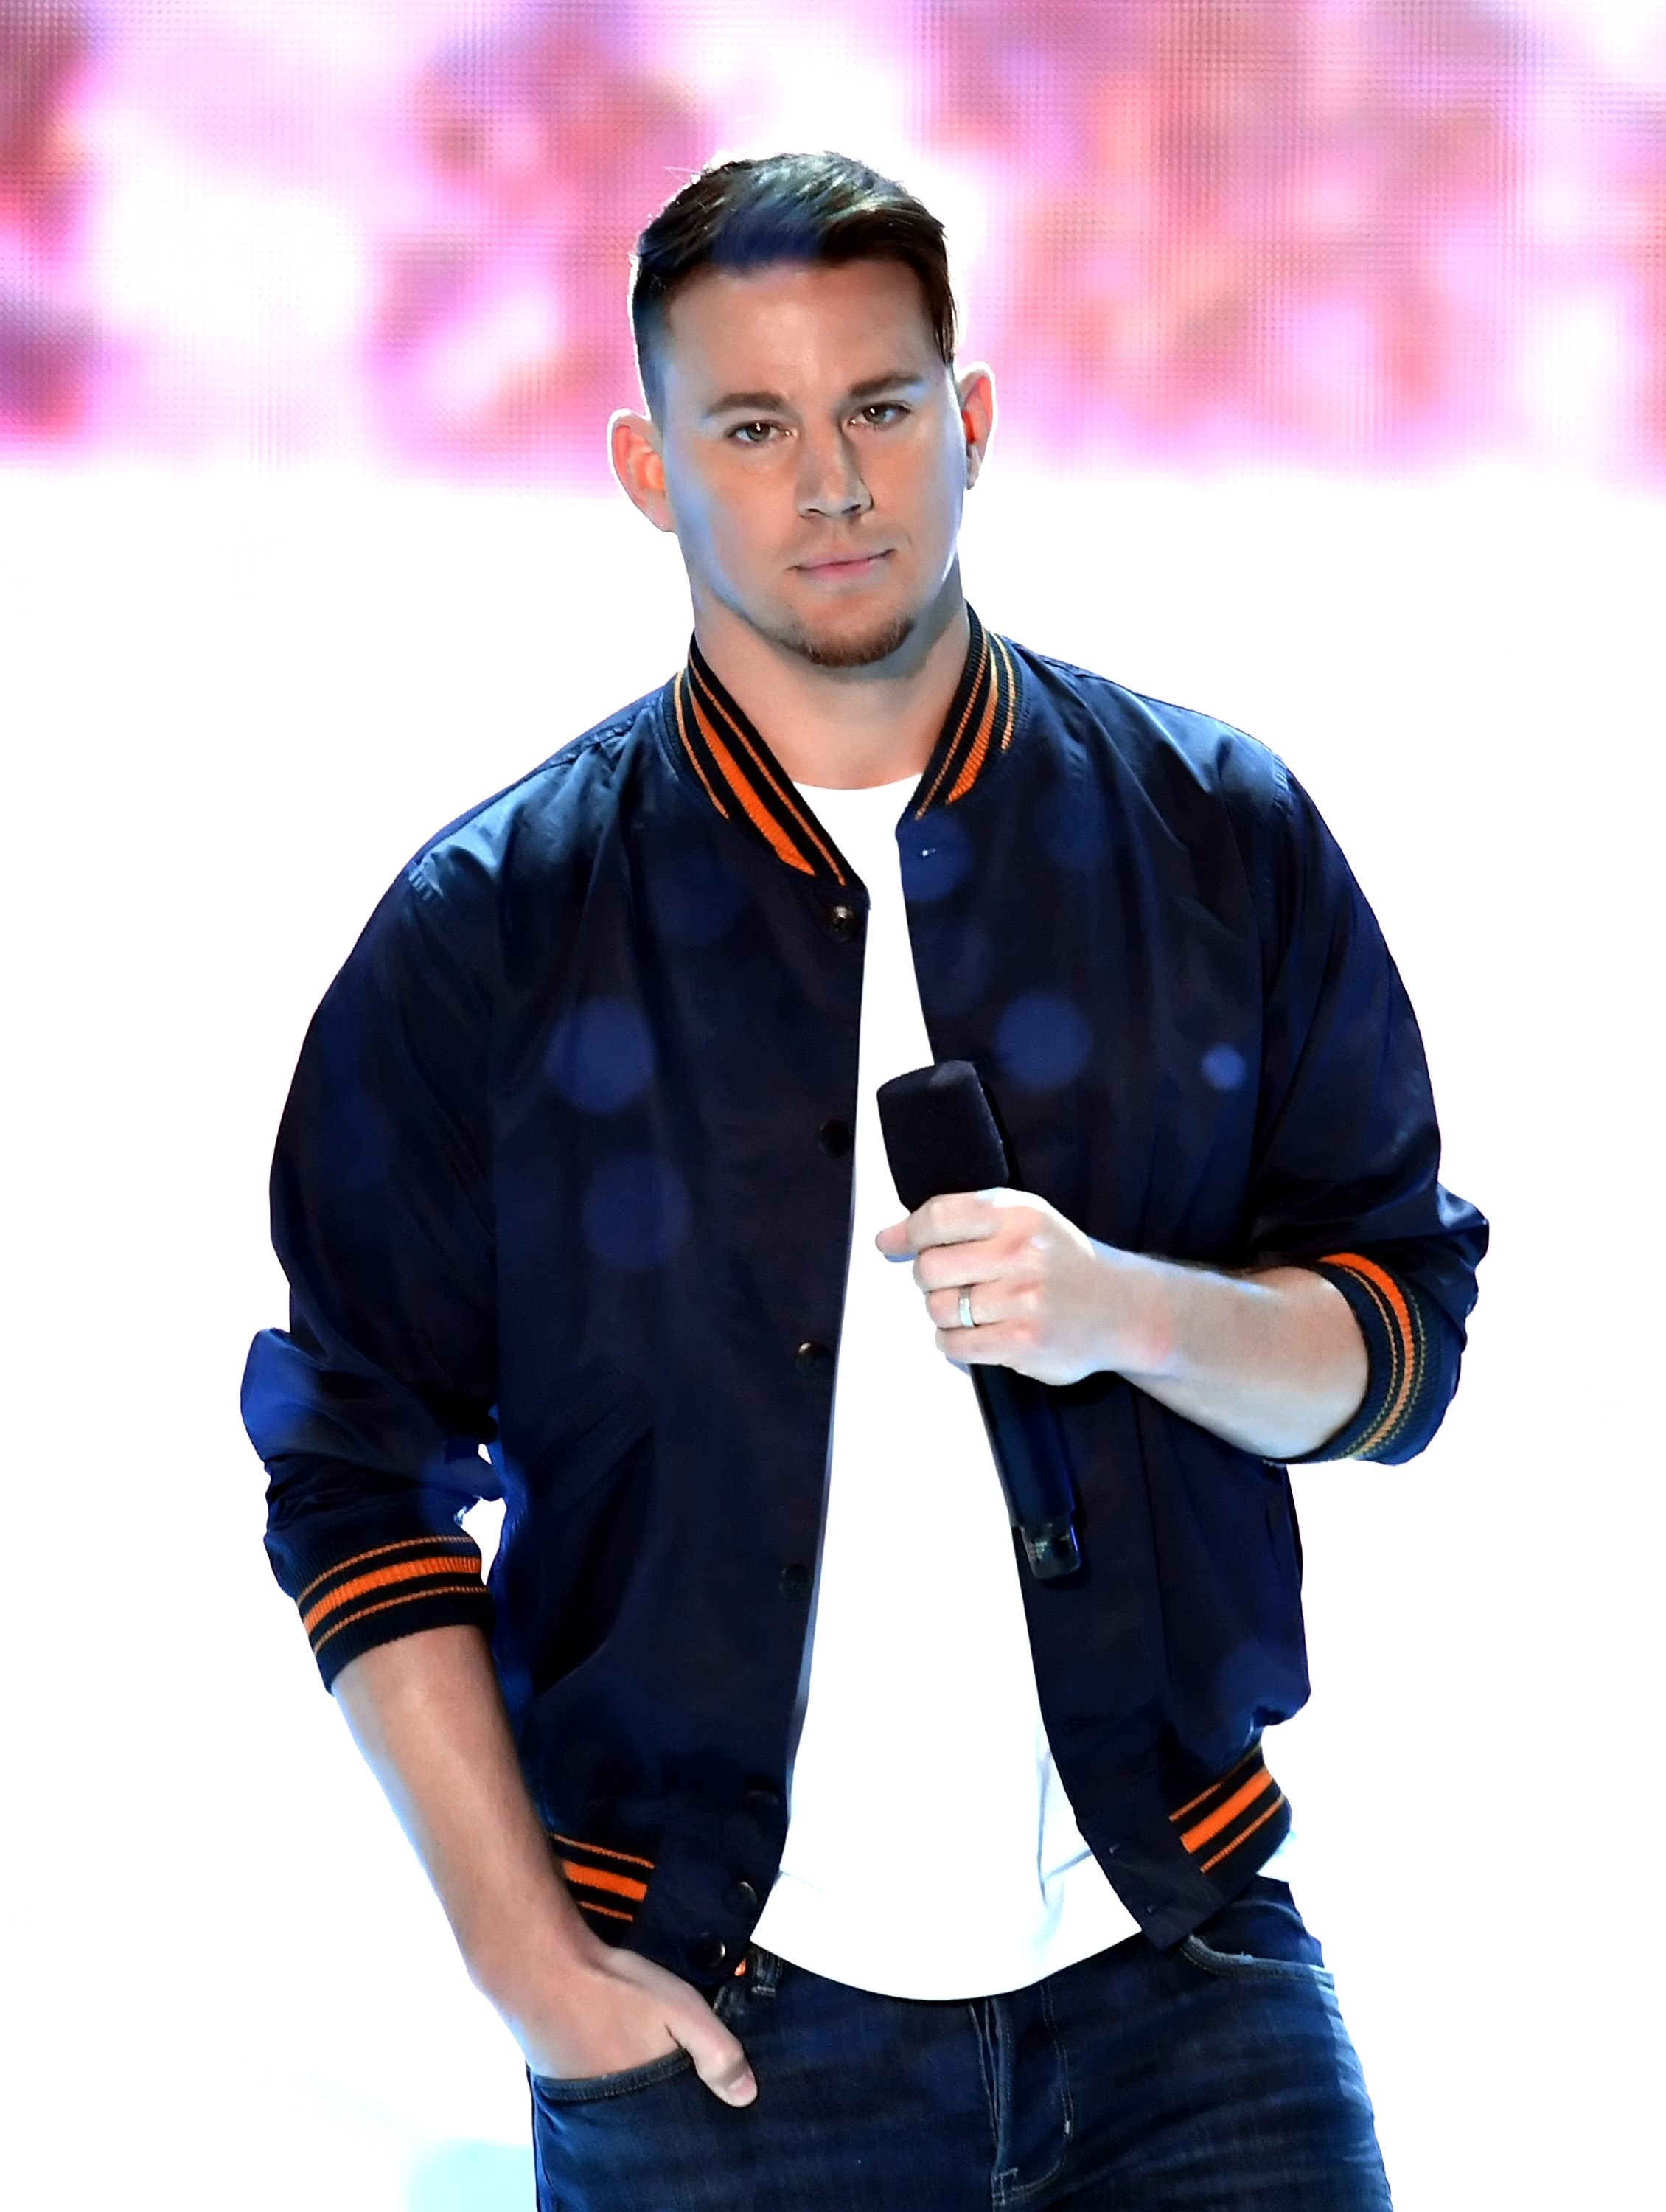 Channing Tatum speaks onstage at Nickelodeon's 2018 Kids' Choice Awards at The Forum on March 24, 2018 in Inglewood, California.